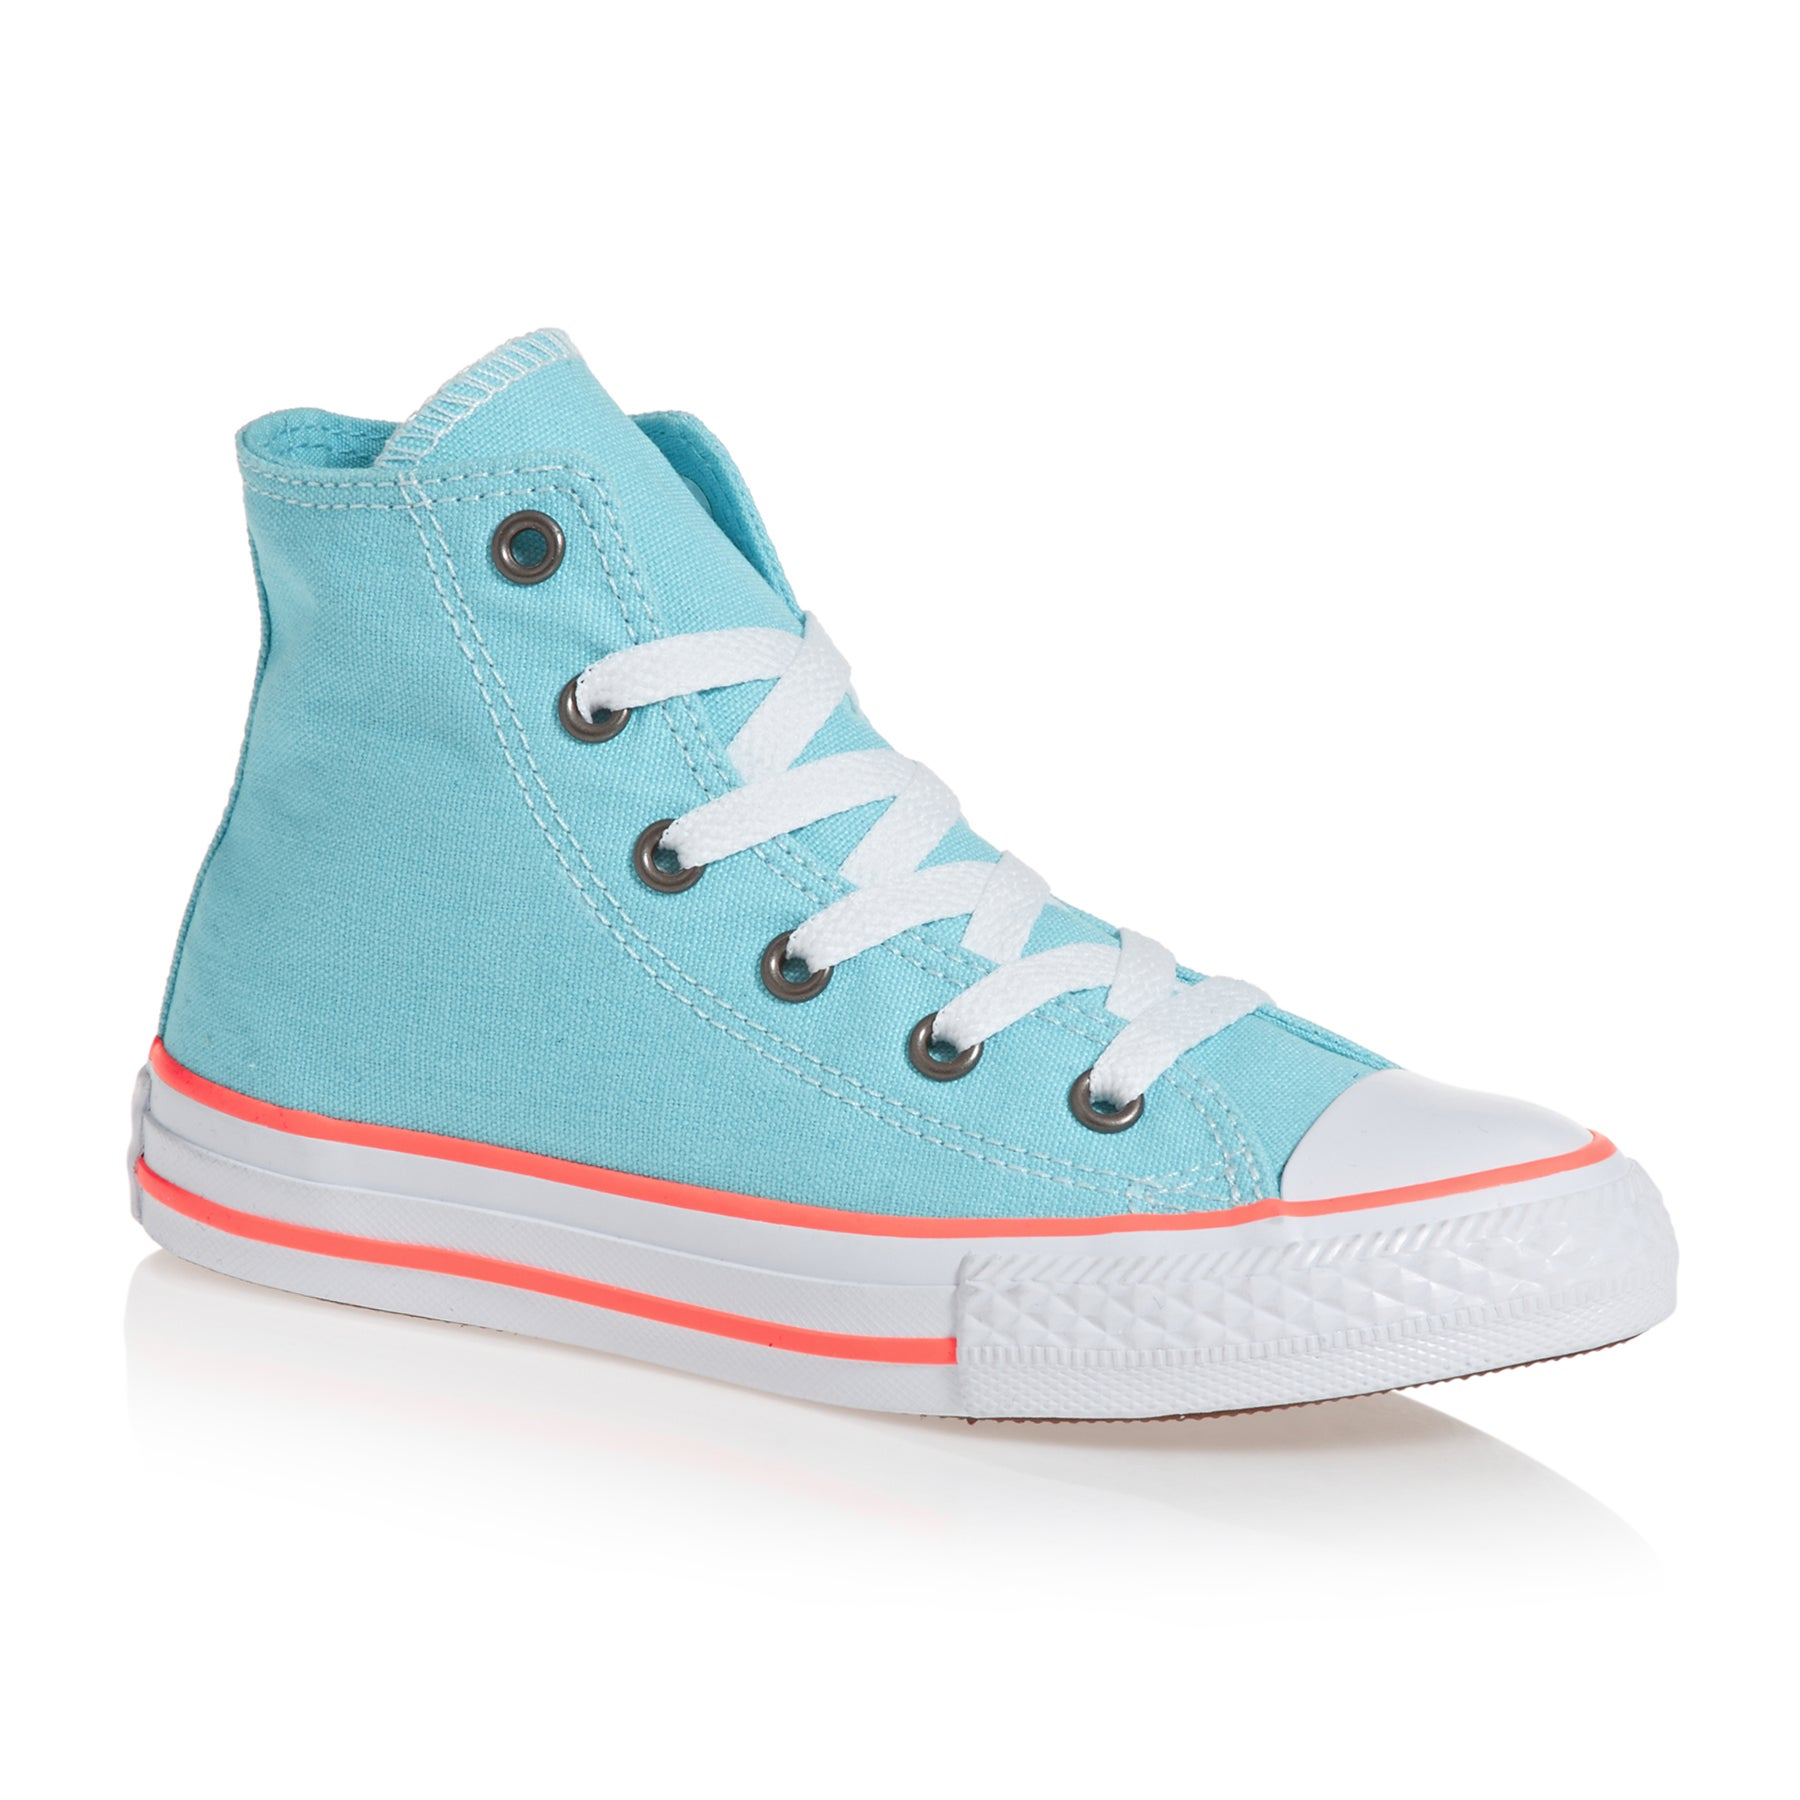 c8389a5a6e7c Converse Chuck Taylor All Star Hi Junior Girls Shoes available from ...